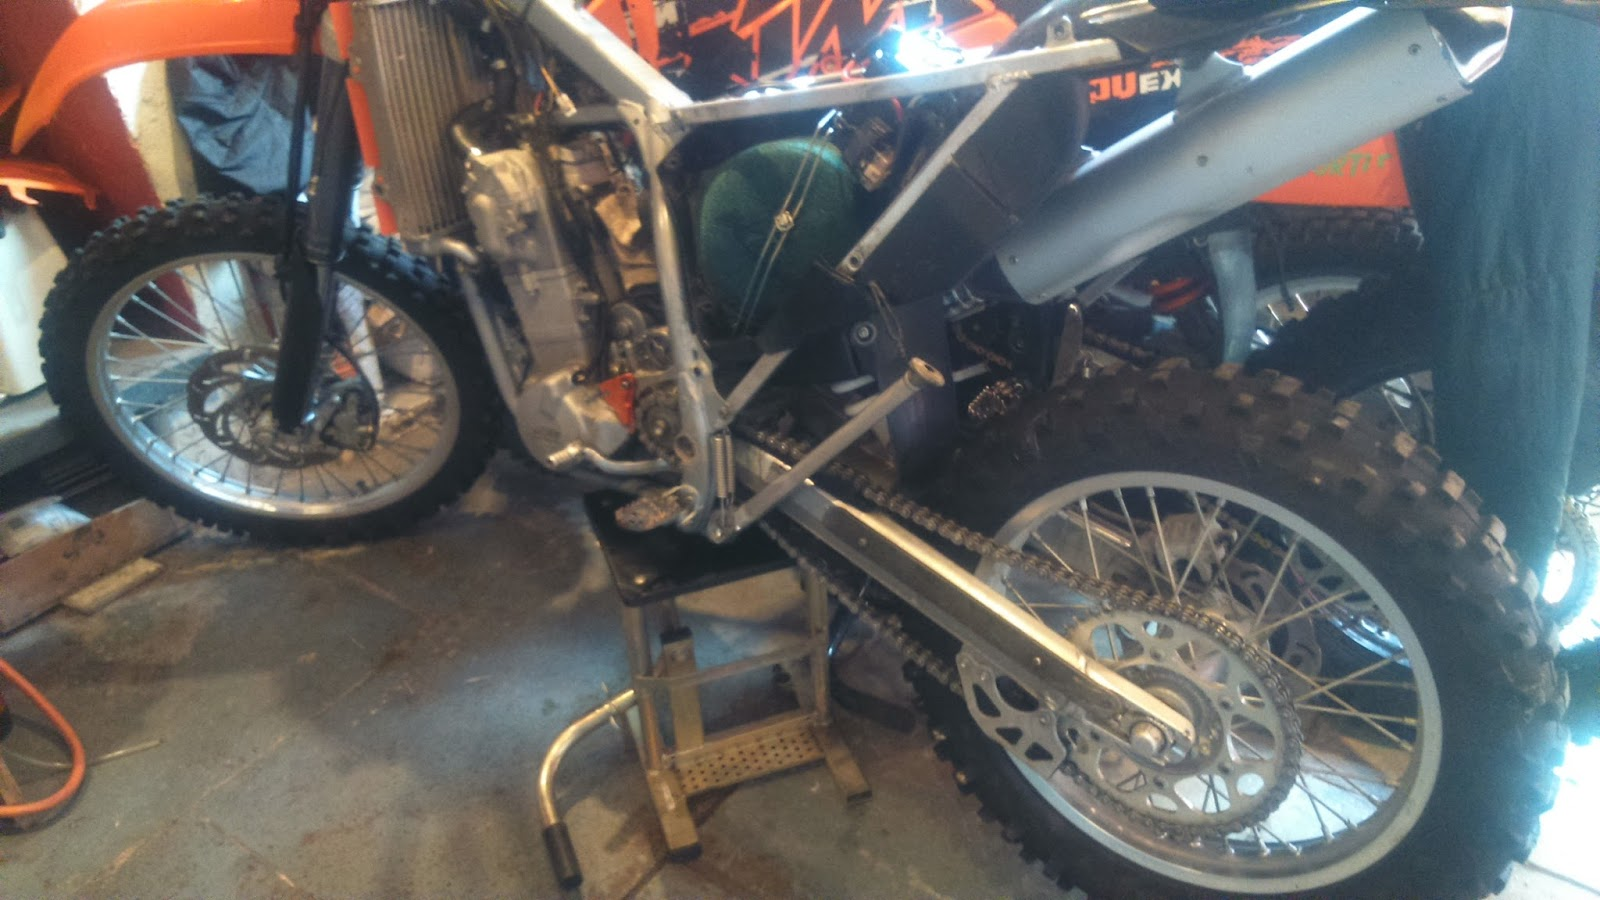 Once I'd got the bike home, it was strip down time and out came the usuals,  spark plug, air filter, oil filters, oil, coolant, and all the brake fluids  and ...